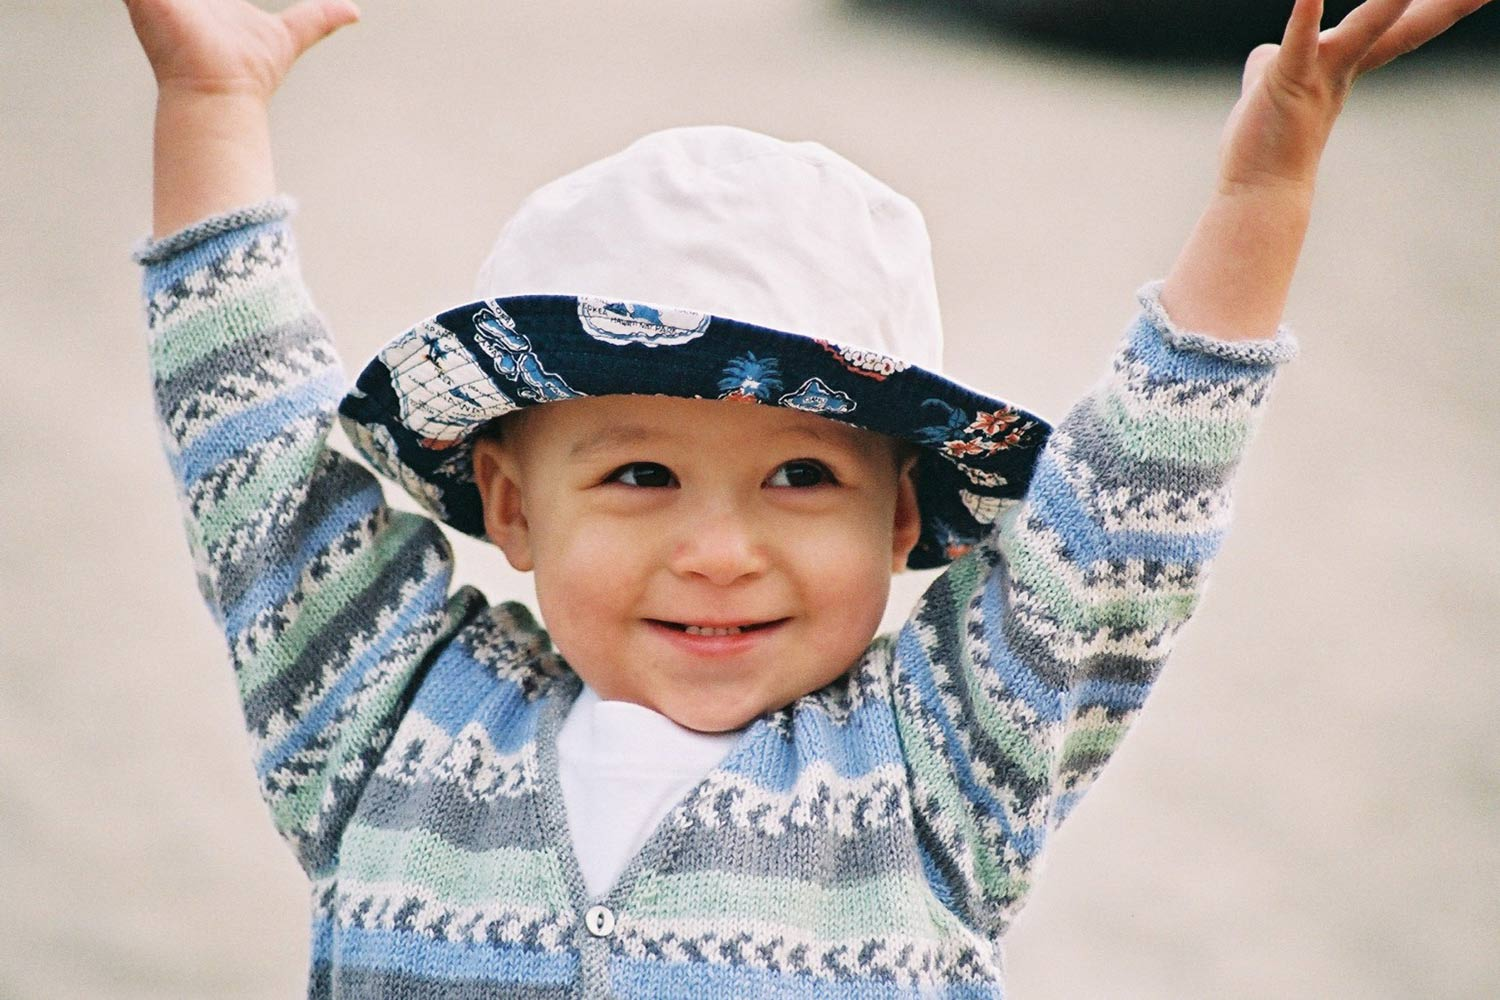 Head and shoulders view of toddler with arms up, wearing a v-neck, long-sleeved cardigan.